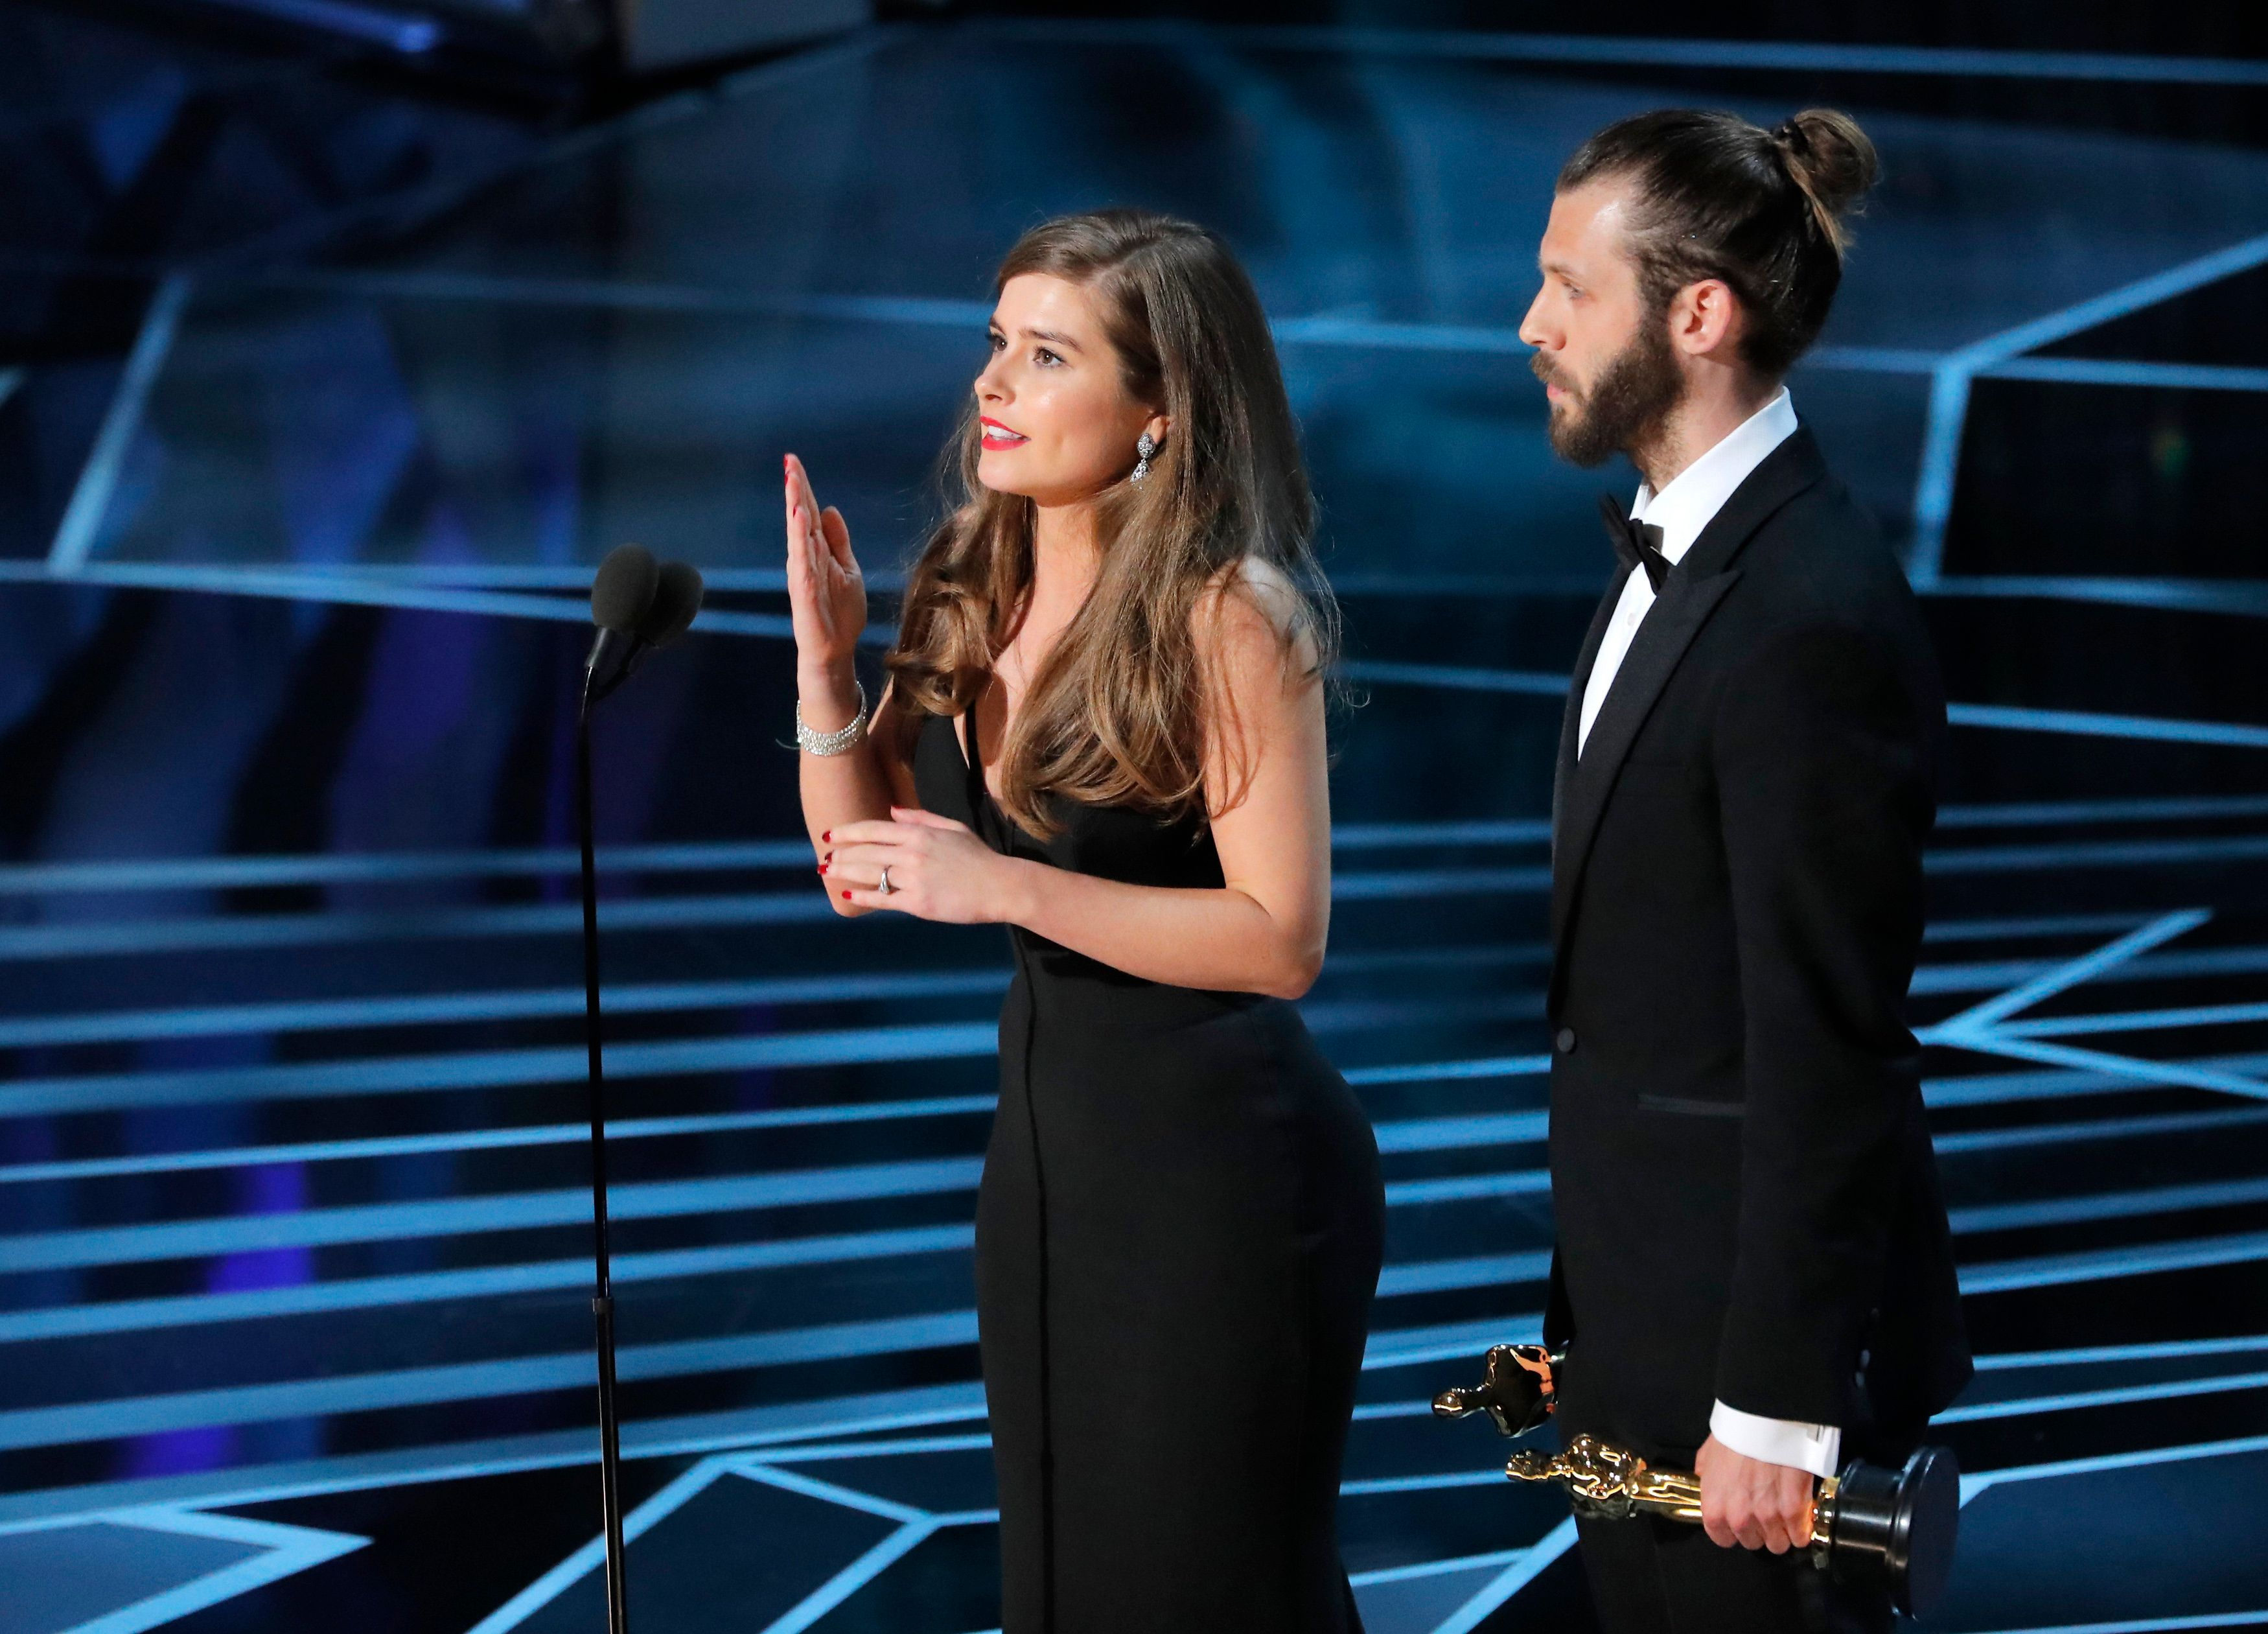 Rachel Shenton, Aka Mitzeee From Hollyoaks, Signed Her Speech After Triumphing At The